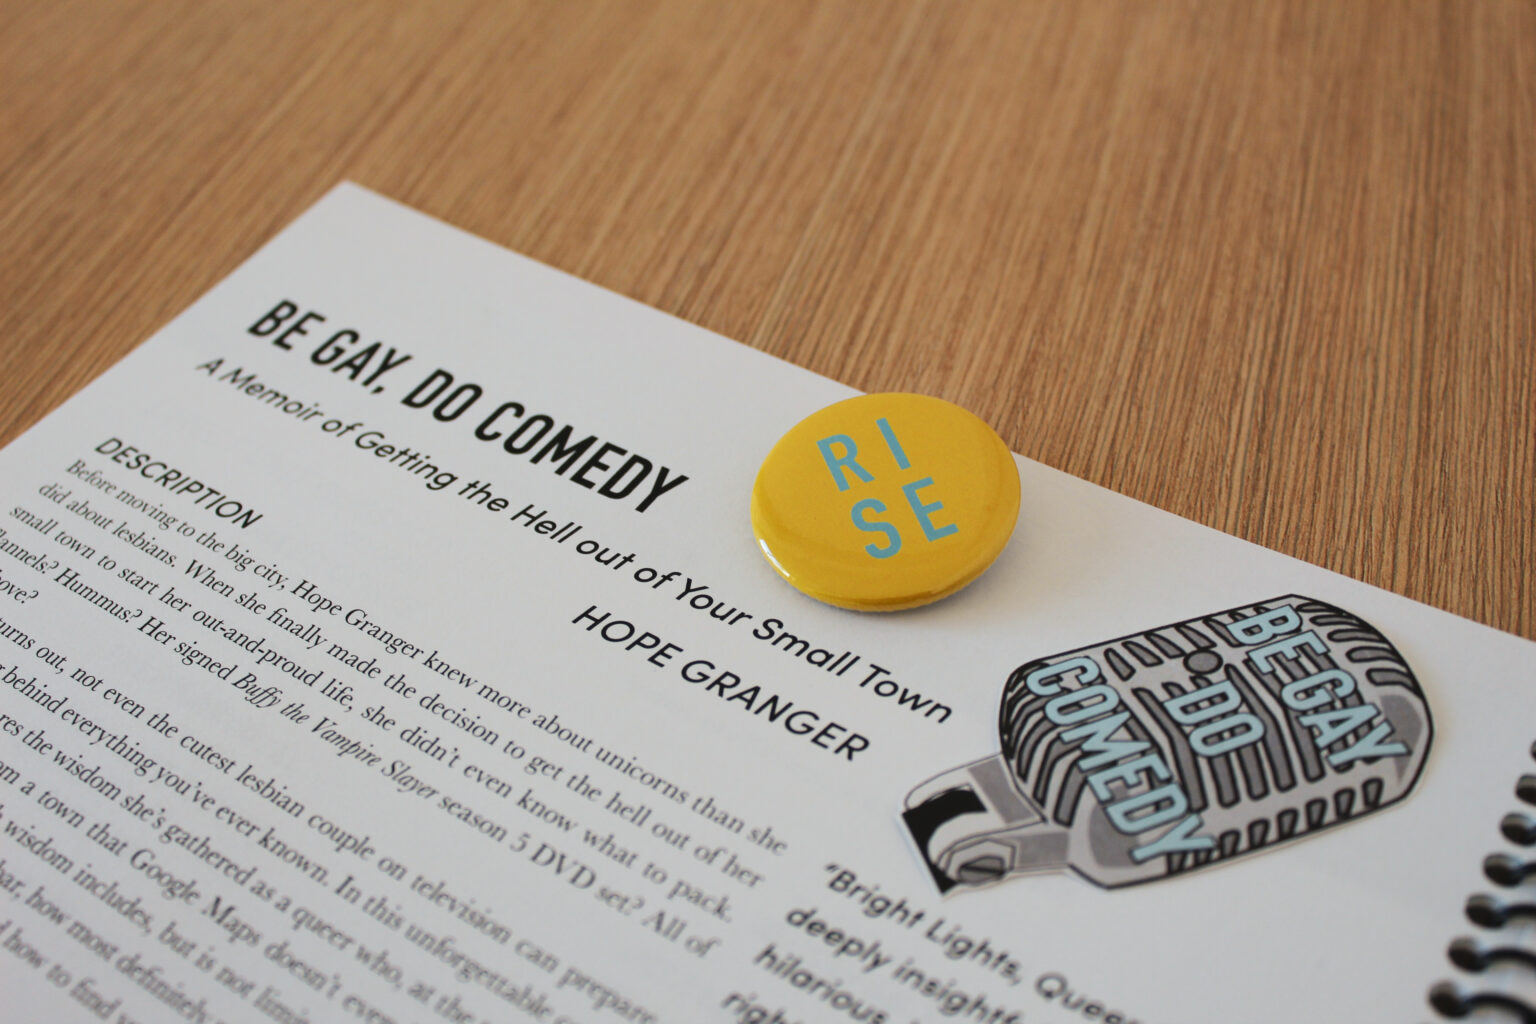 RISE project materials – Be Gay Do Comedy tip sheet and sticker + button